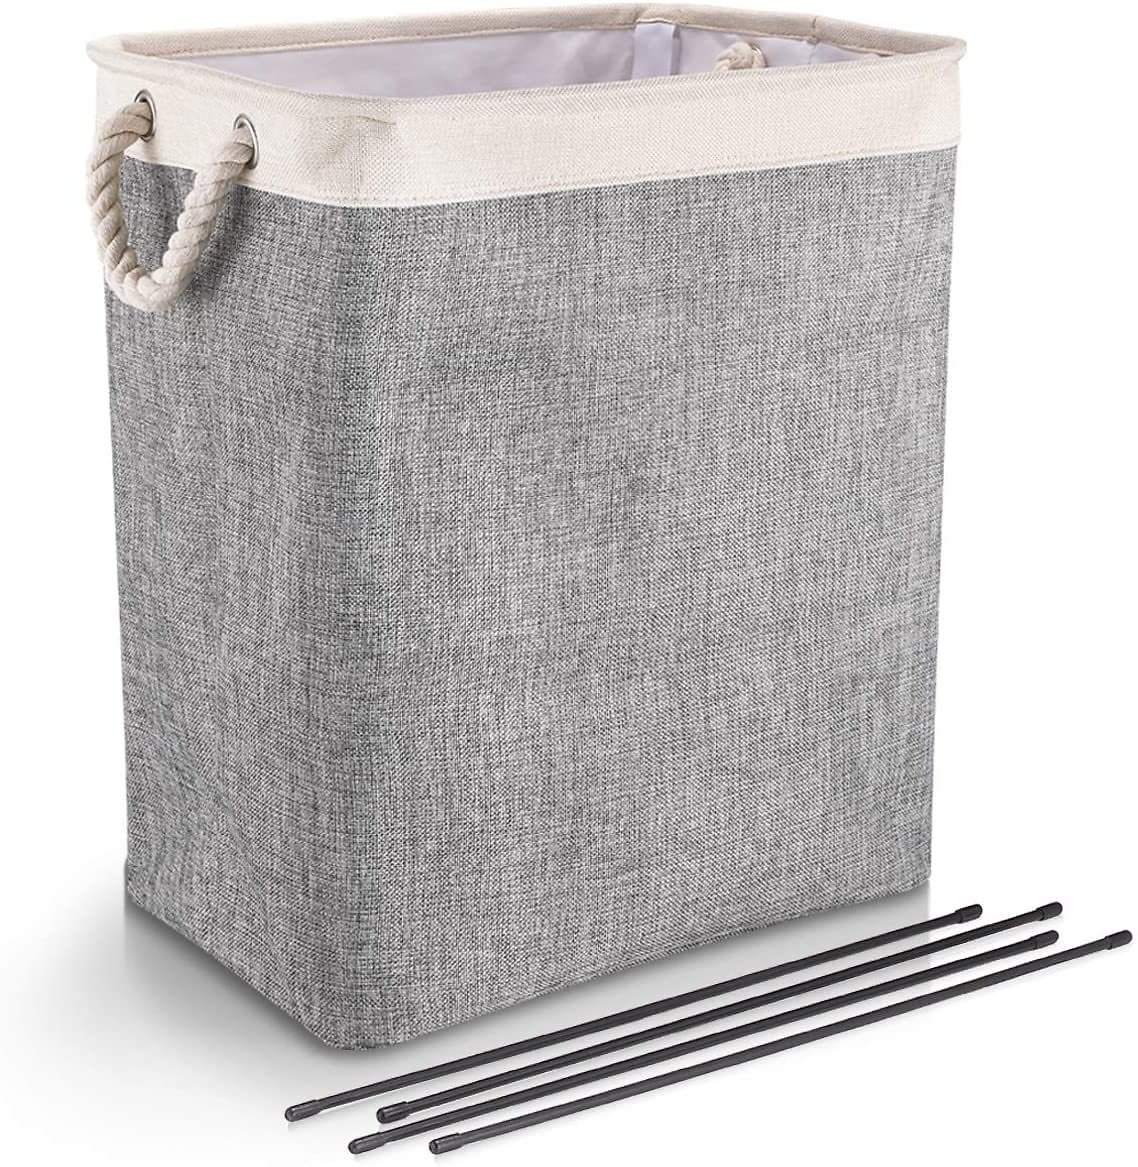 DYD Foldable Laundry Basket with Handles & Brackets